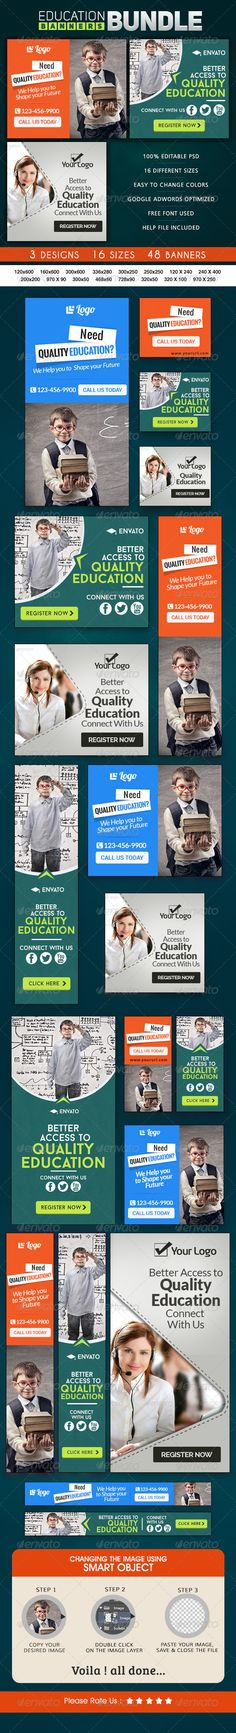 Education Banner Bundle Template PSD | Buy and Download: http://graphicriver.net/item/education-banner-bundle-3-sets/8661528?WT.ac=category_thumb&WT.z_author=doto&ref=ksioks